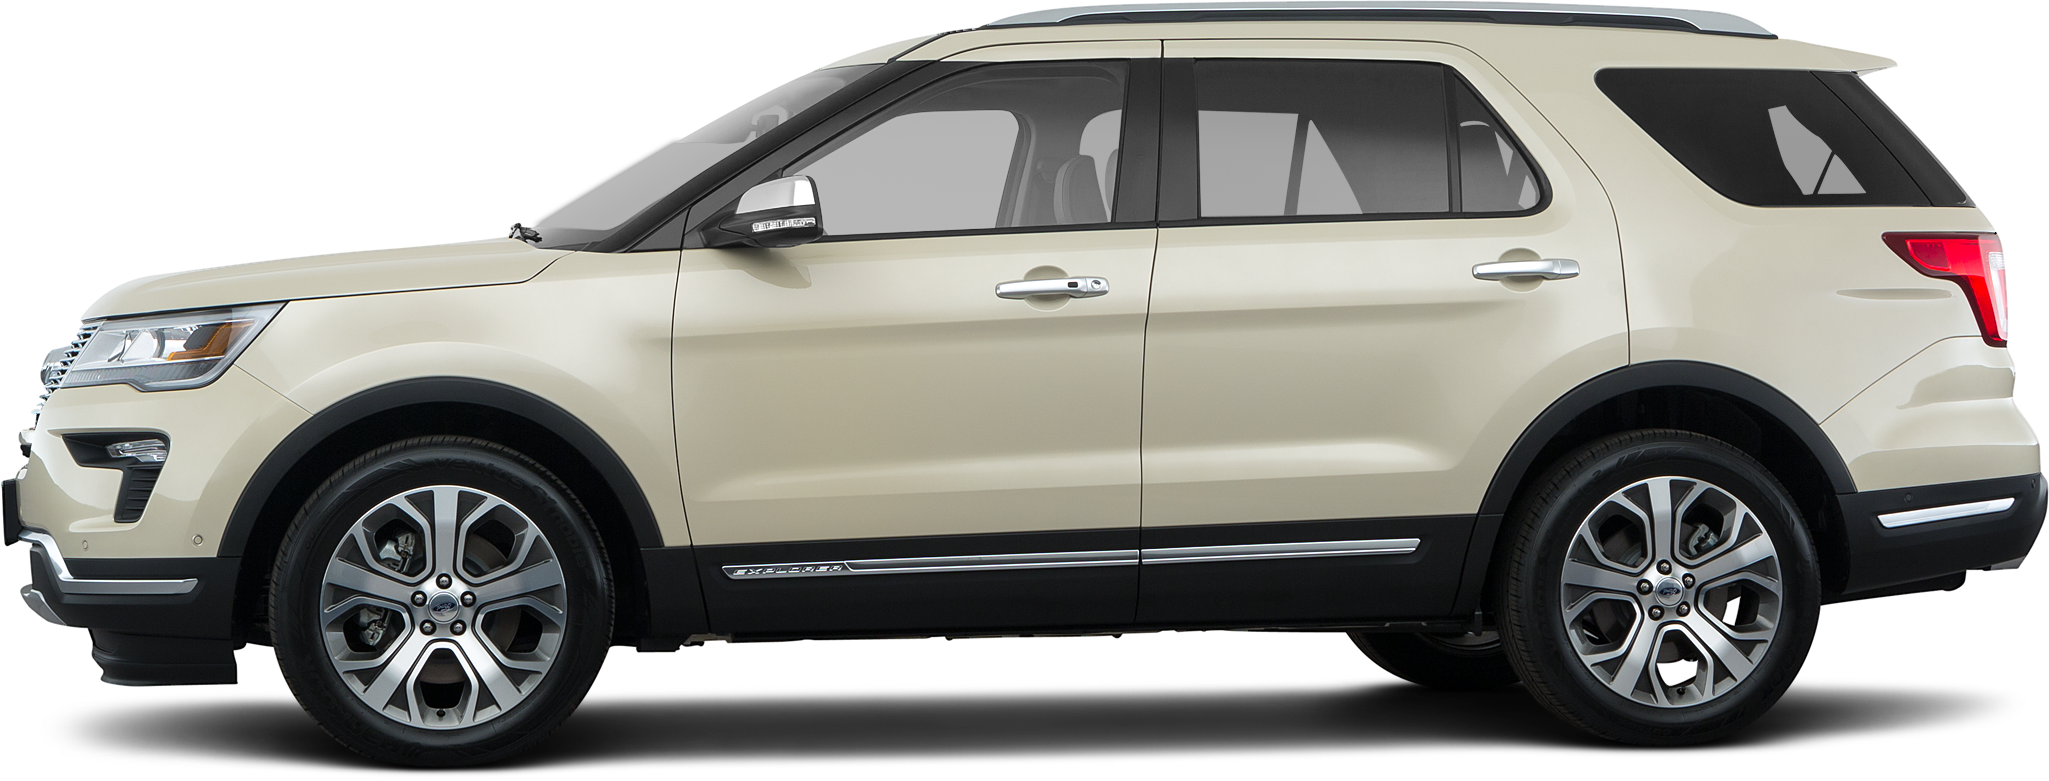 2018 Ford Explorer SUV Platinum